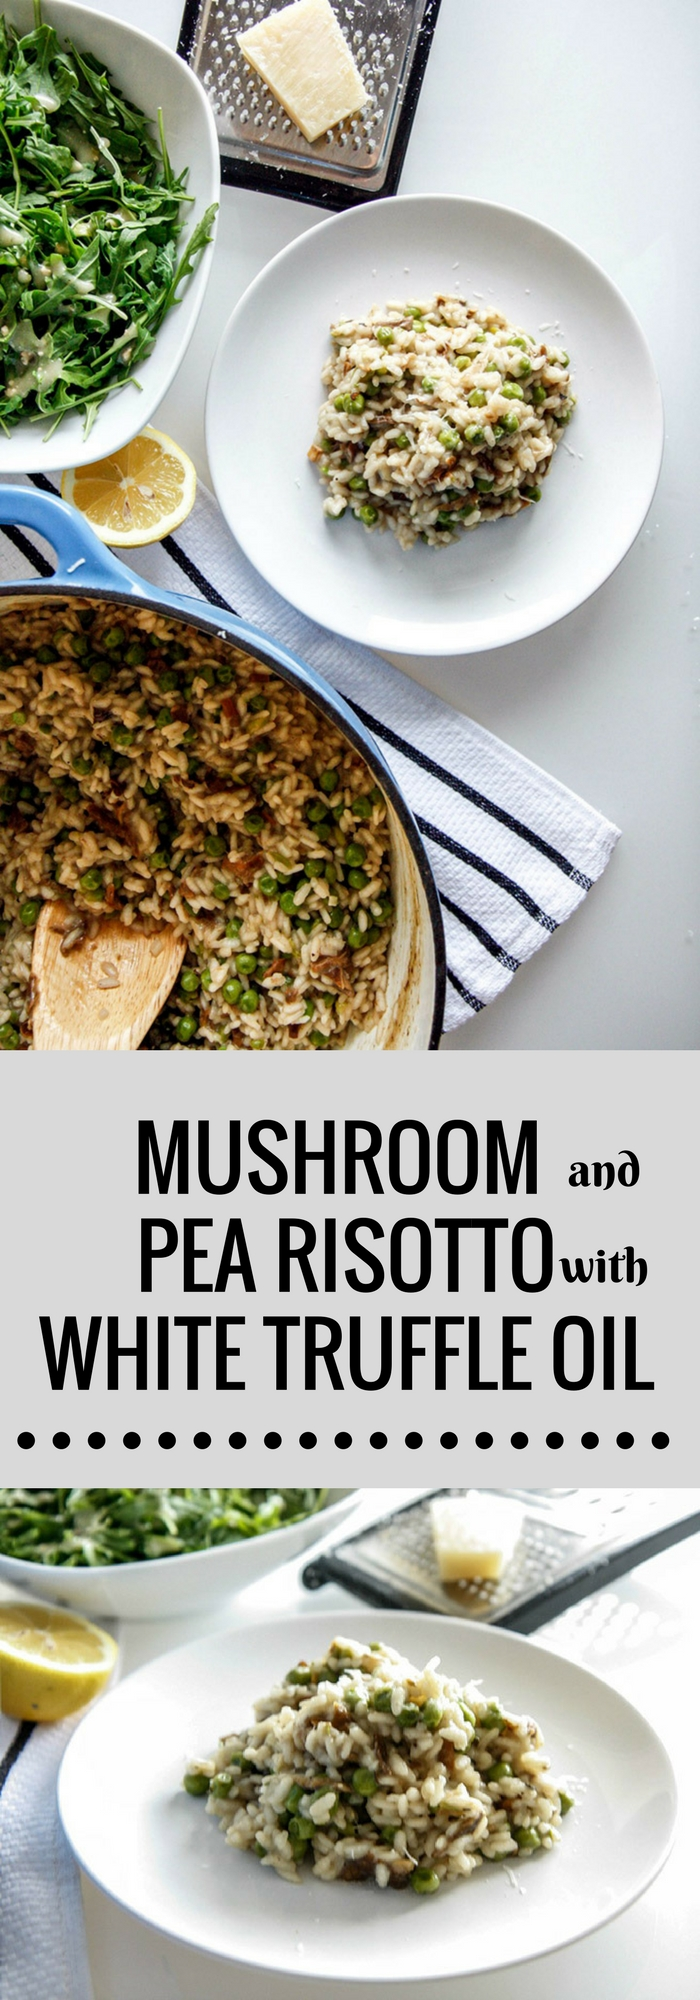 Mushroom Pea Risotto with White Truffle Oil, a simple vegetarian mushroom risotto recipe easy enough for weeknight dinners! #pasta #risotto #mushrooms